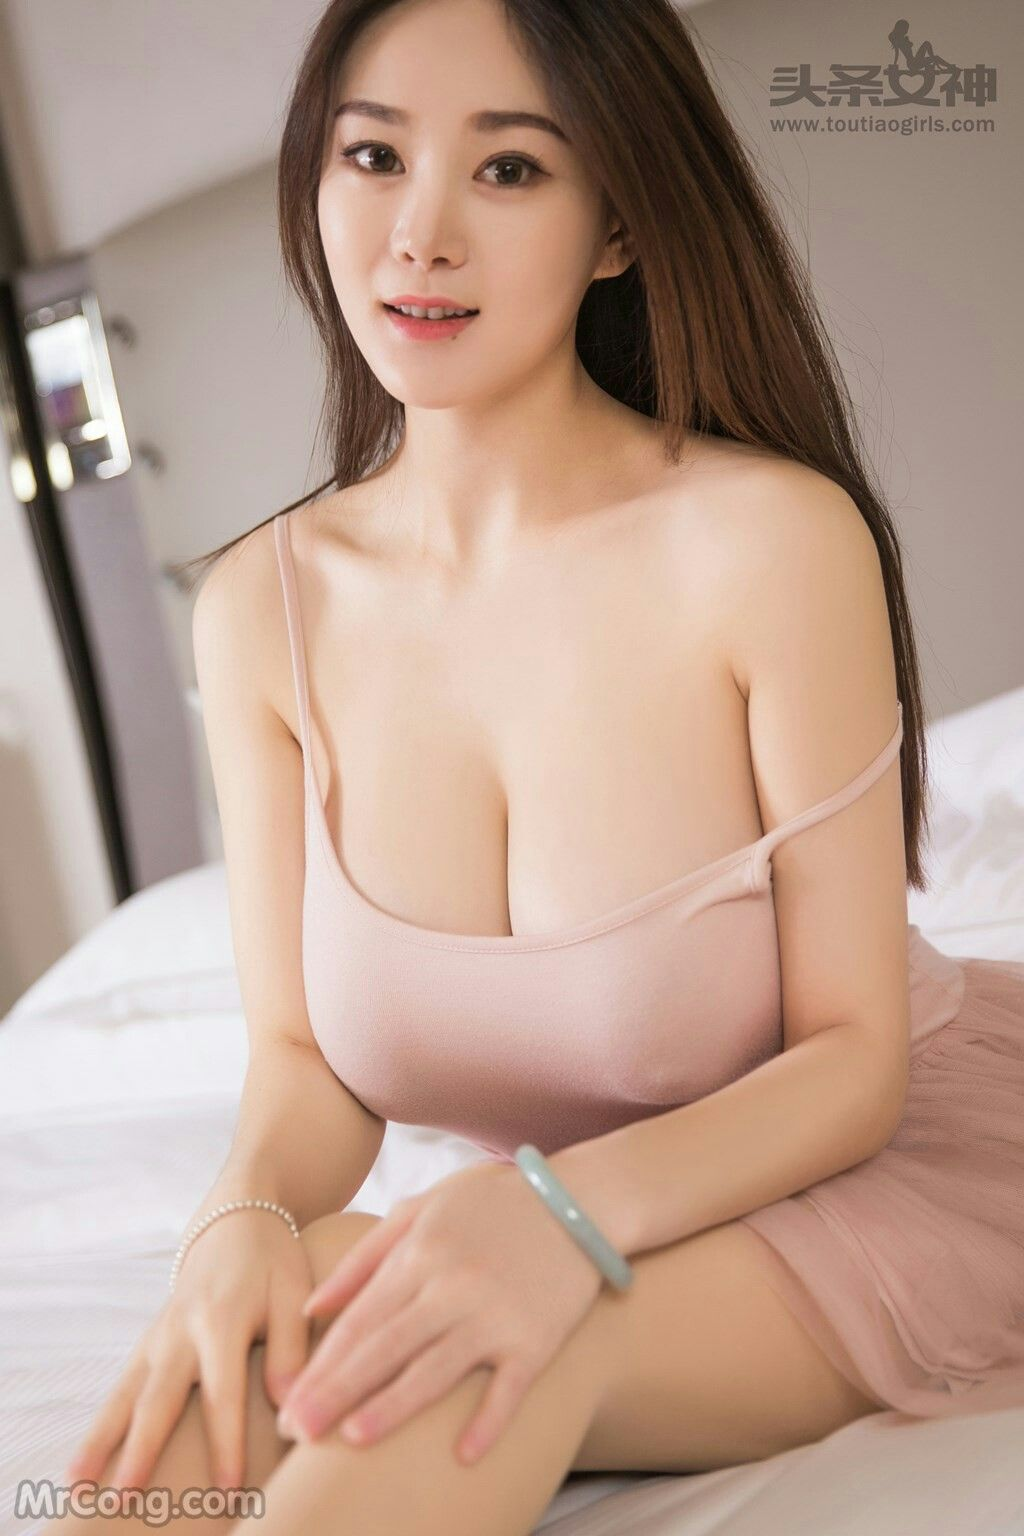 yang sex hot japan girls